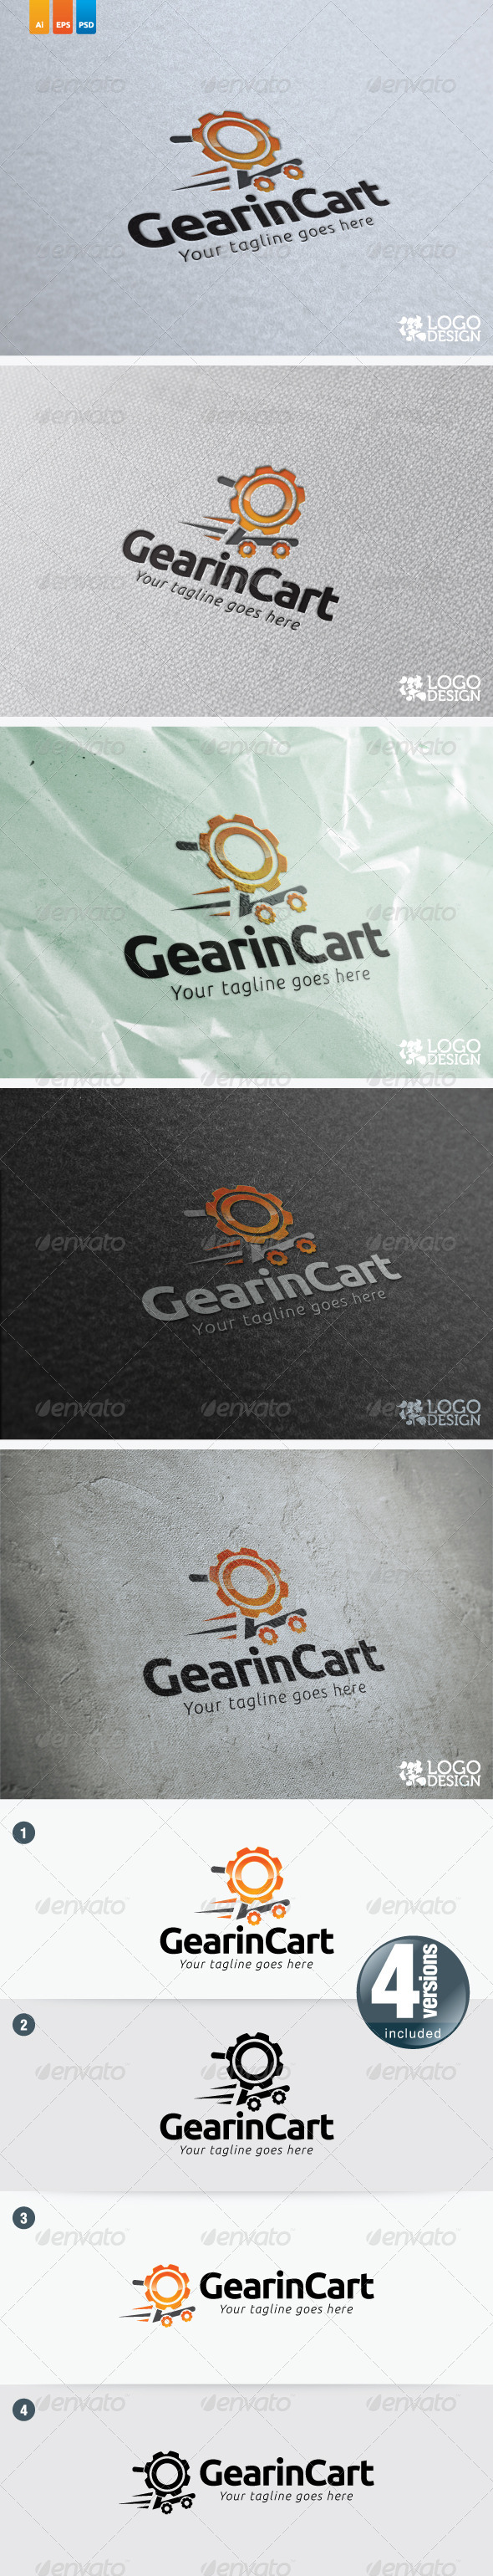 GearinCart - Objects Logo Templates